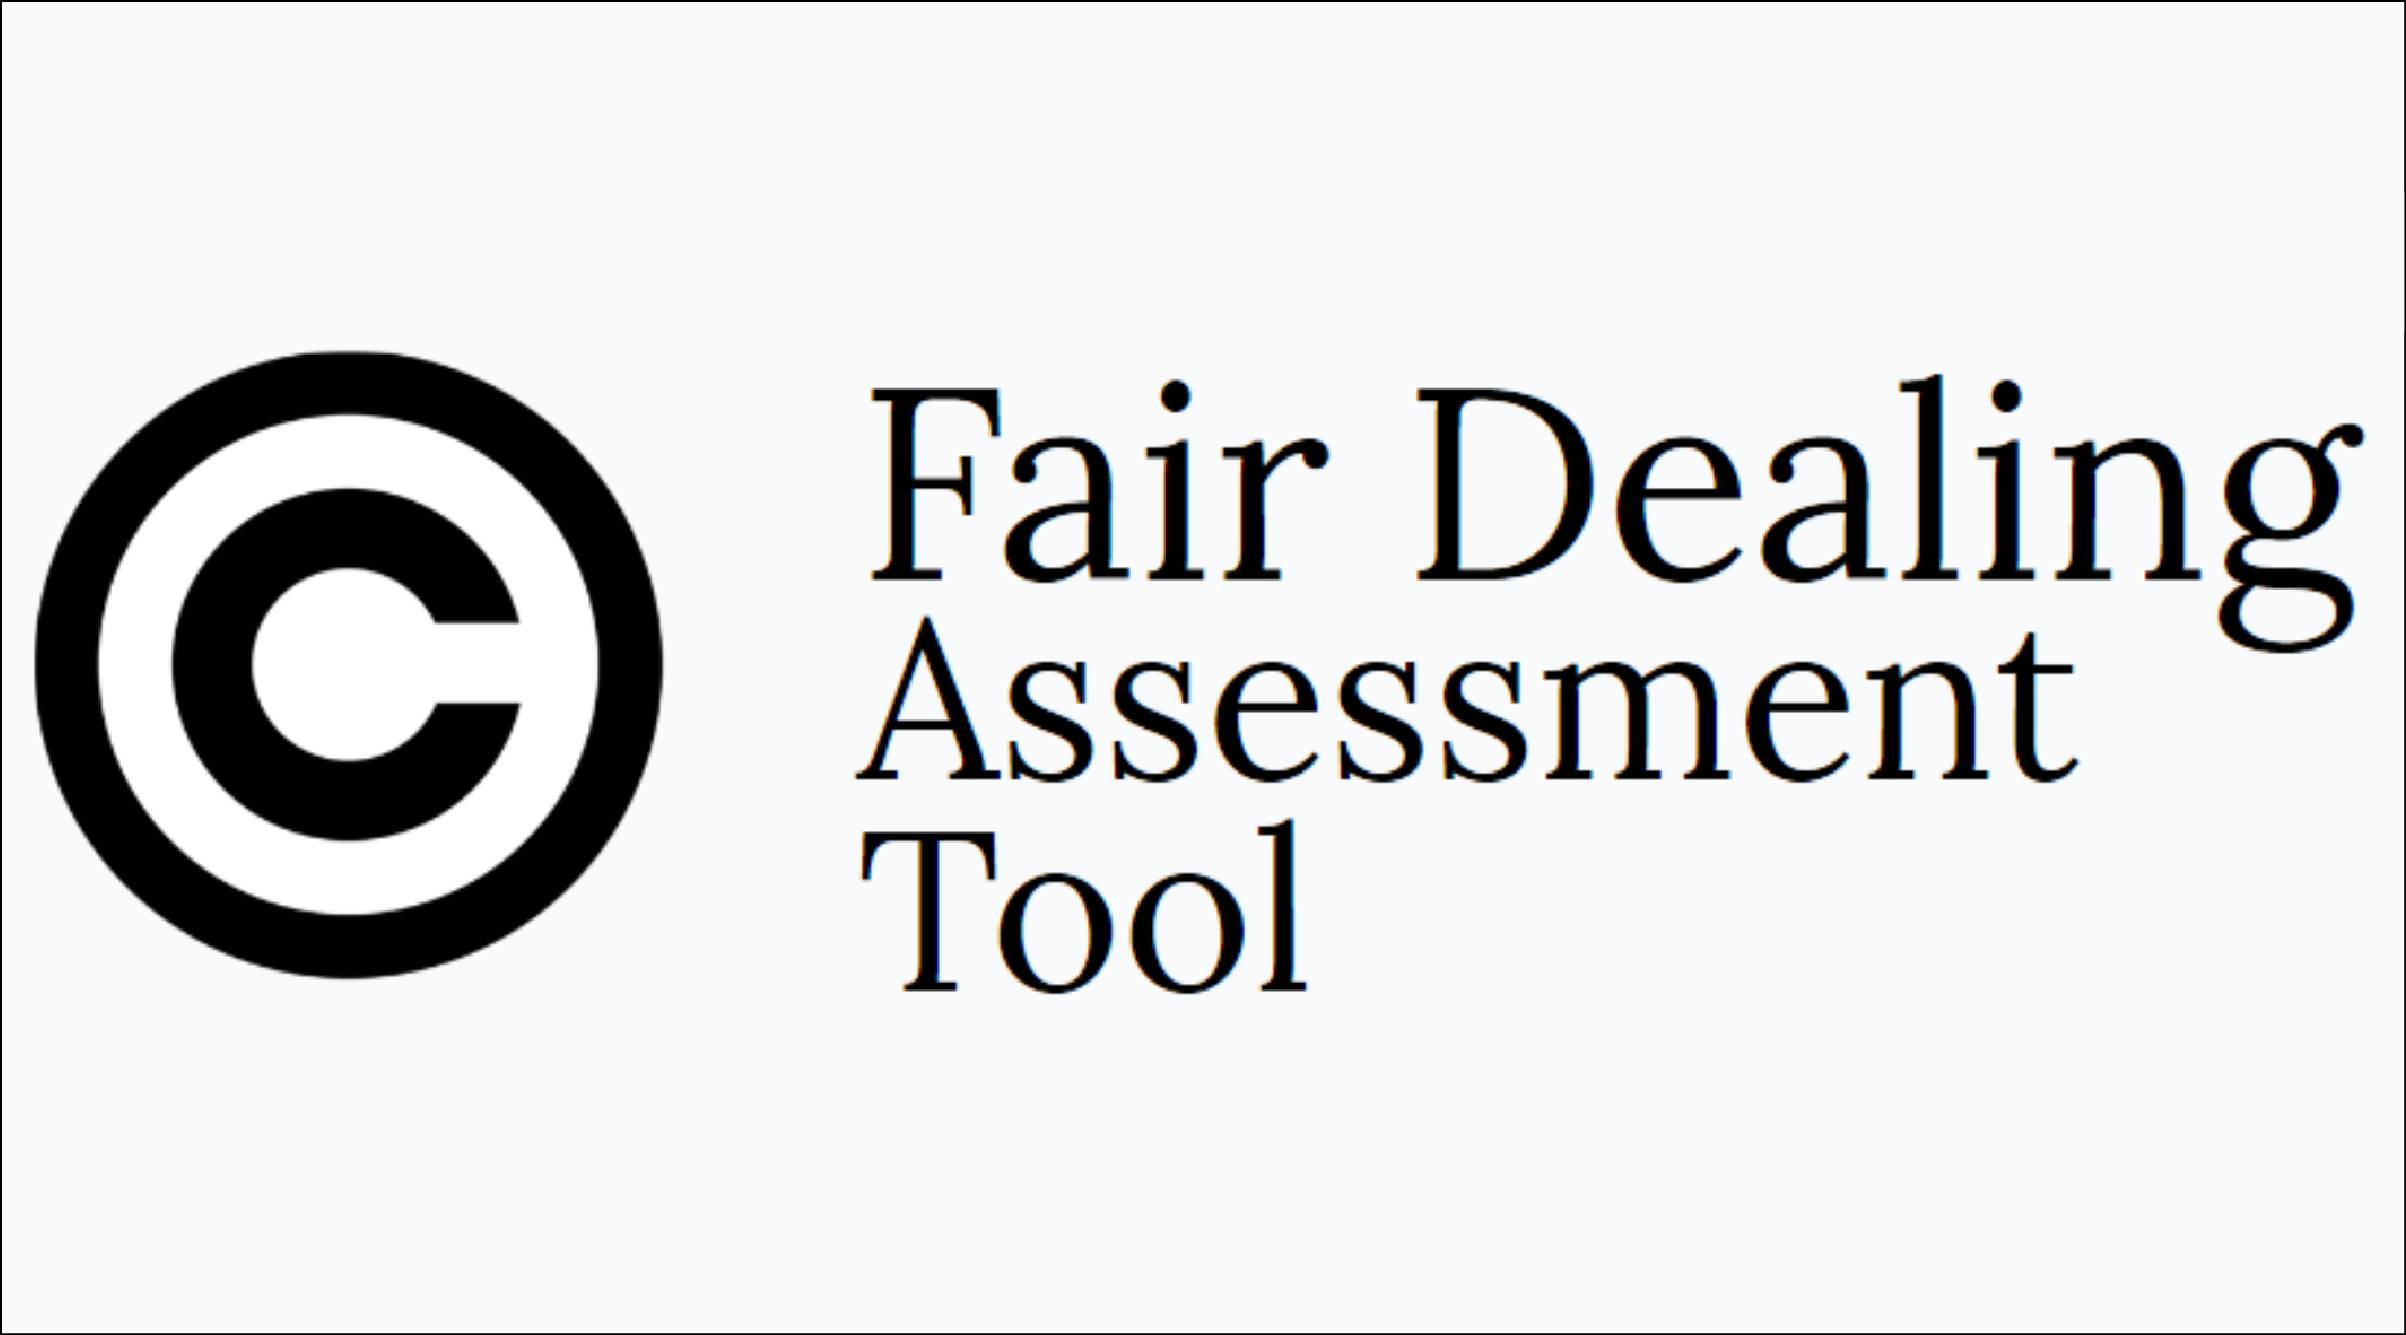 Fair Dealing Assessment Tool